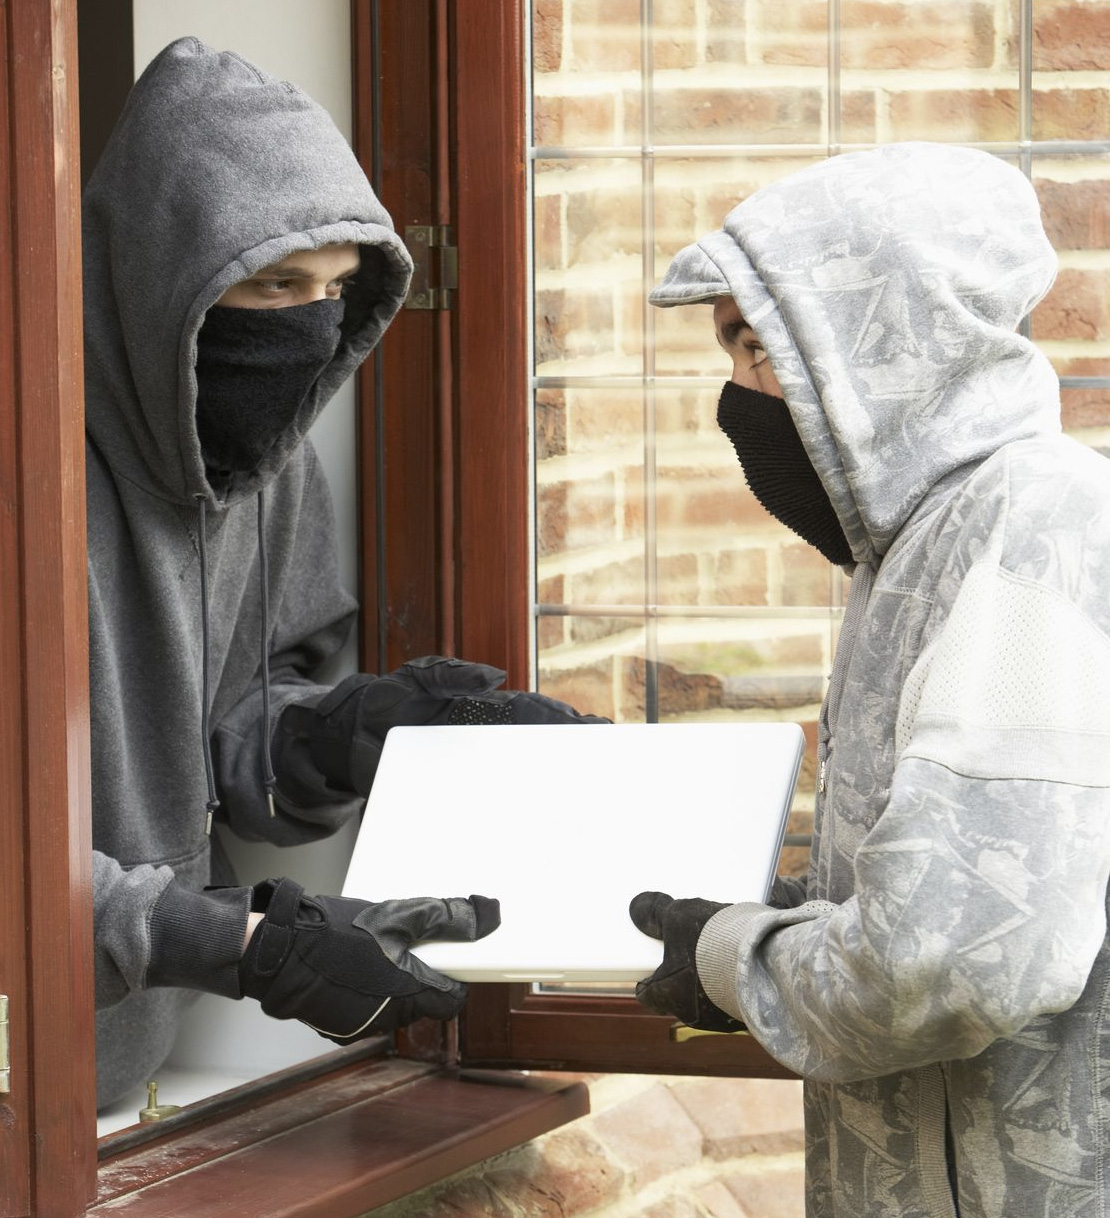 Cracking down on burglaries in Bradford